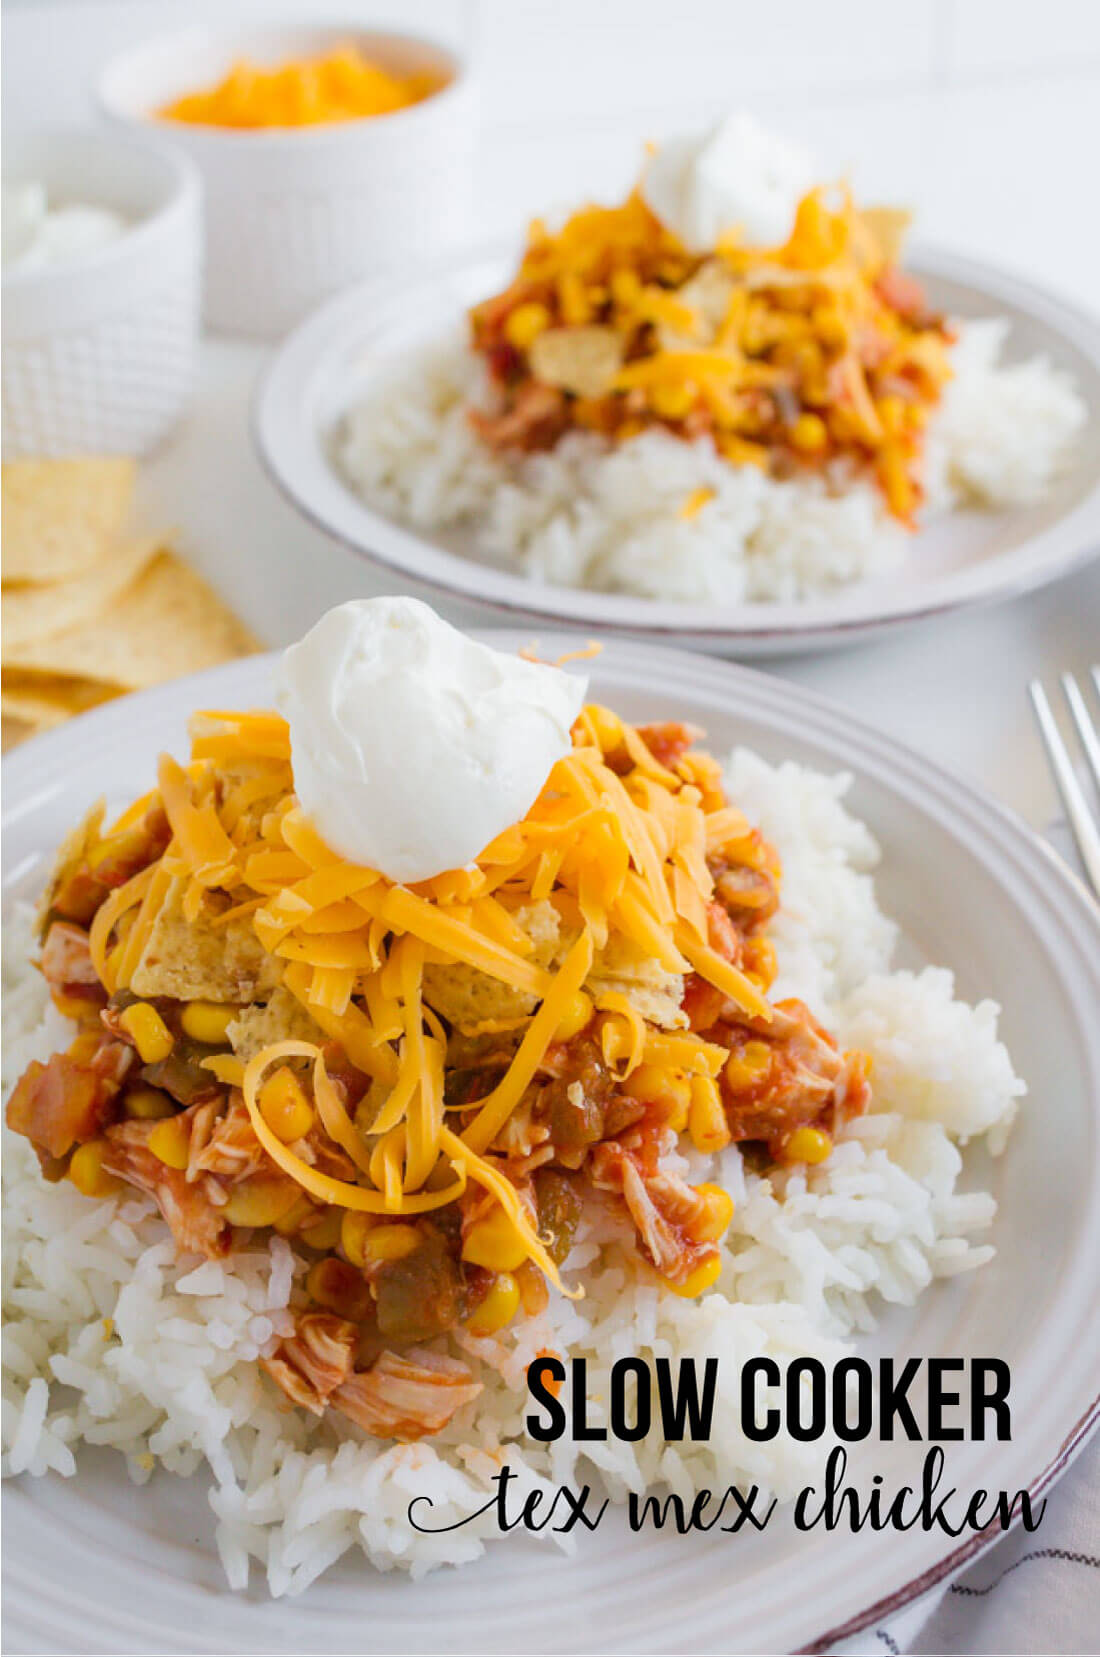 Slow Cooker Chicken Tex Mex - simple crockpot recipe that the whole family will love! www.thirtyhandmadedays.com